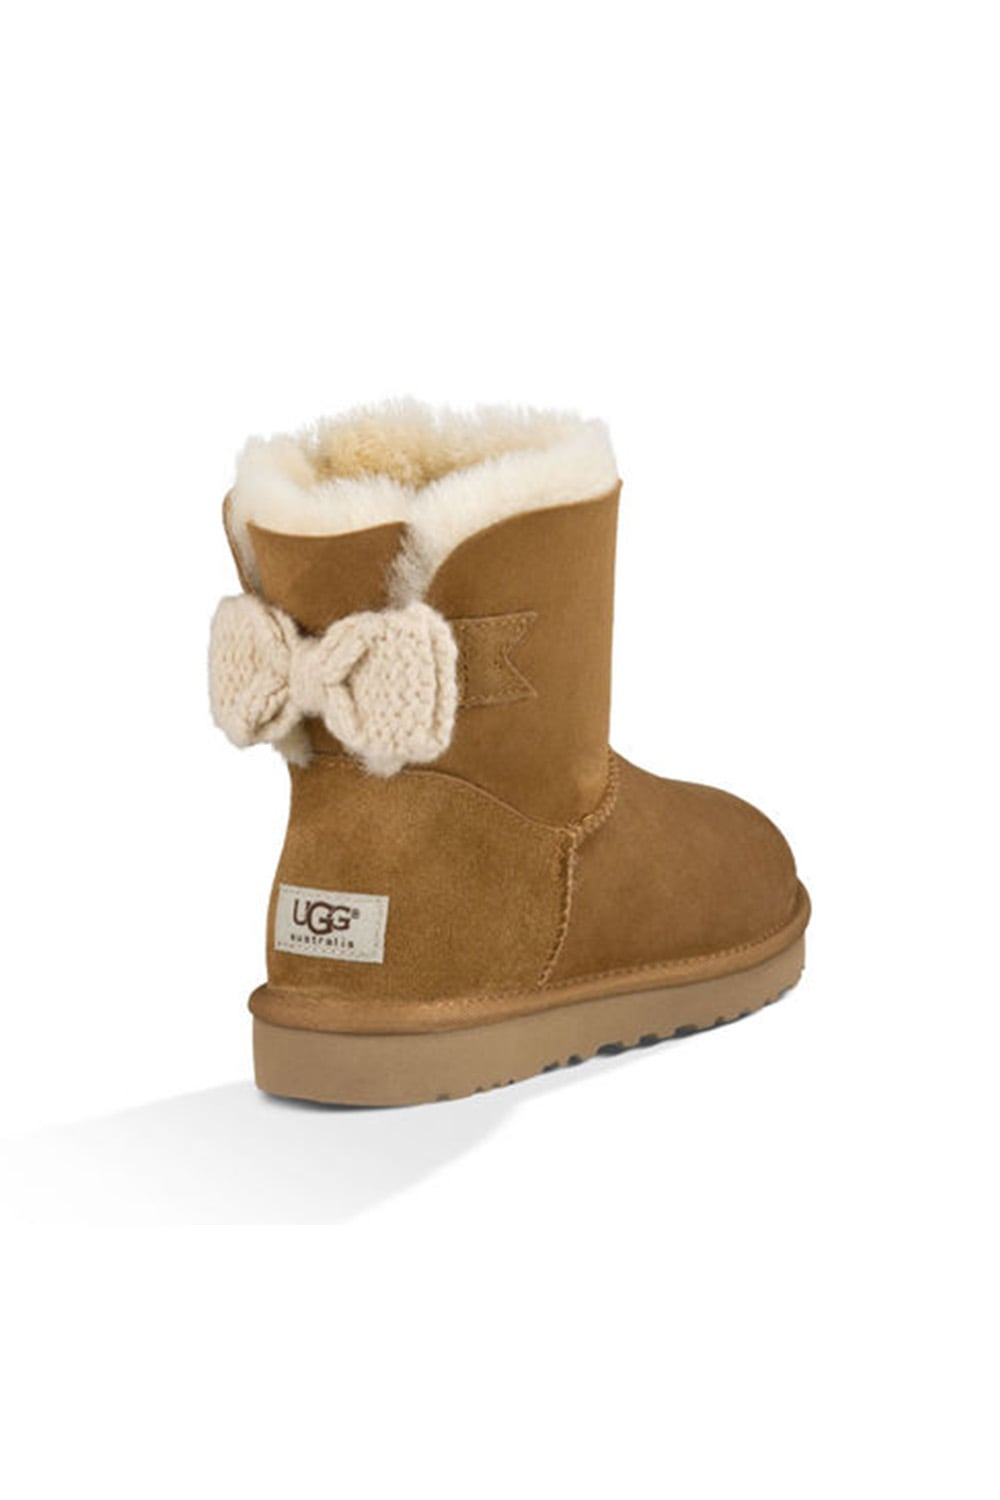 9e746994388 Ugg Knit Boot Sizing - cheap watches mgc-gas.com